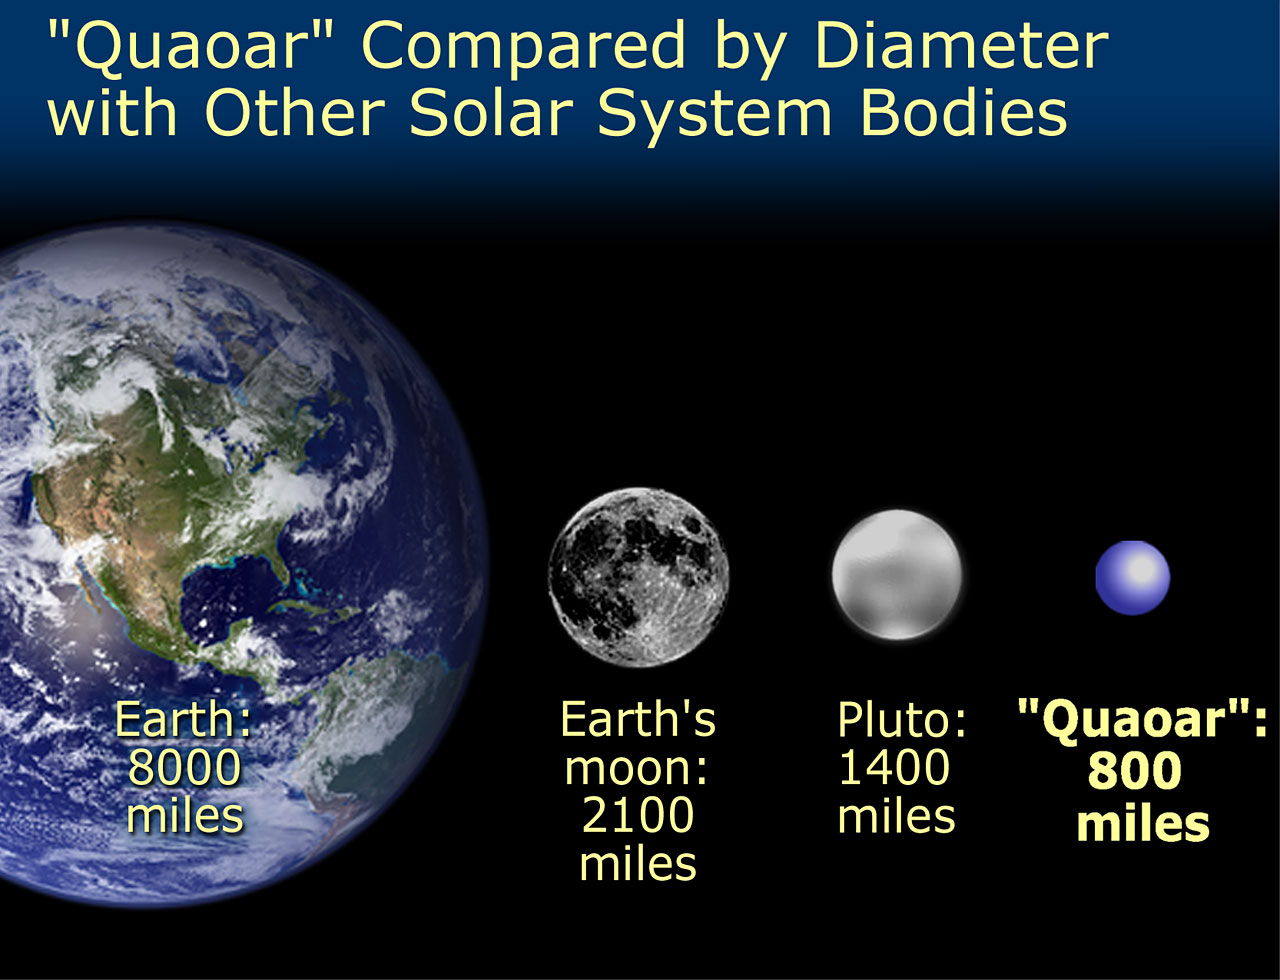 Quaoar's size compared with Pluto, Earth's Moon, and the Earth ...